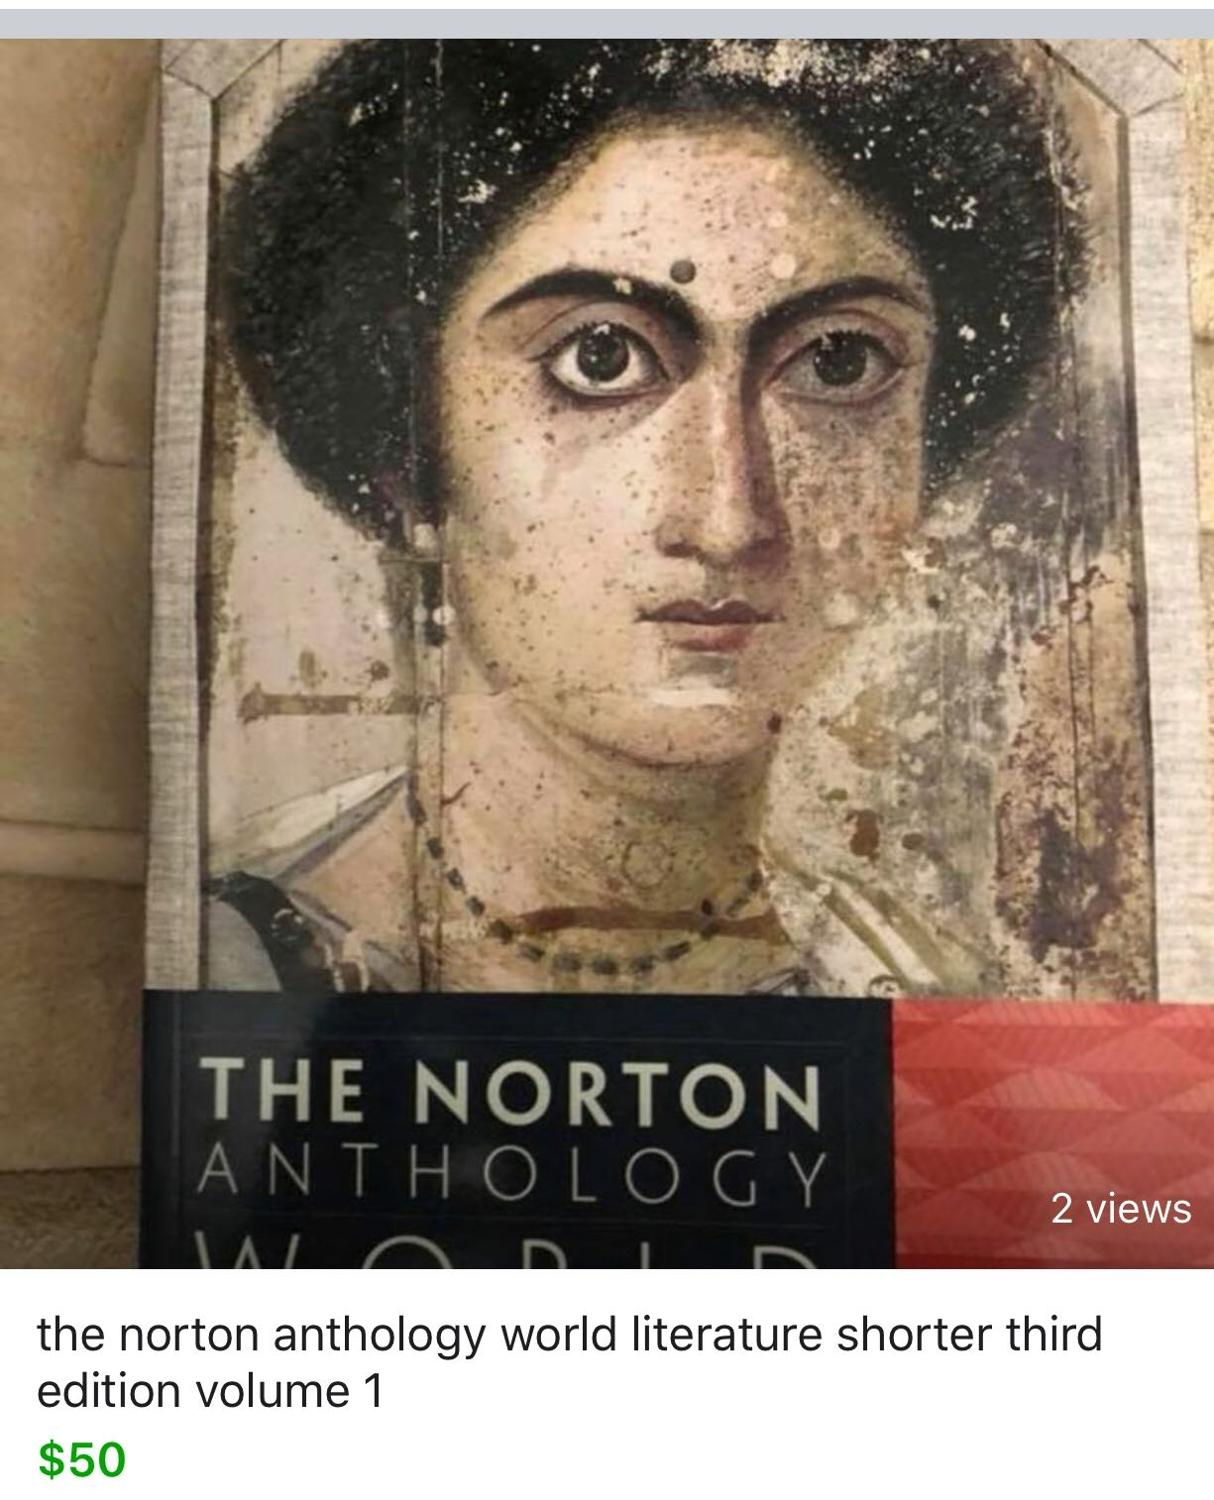 Find more The Norton Anthology World Literature Shorter Third Edition  Volume 1 for sale at up to 90% off